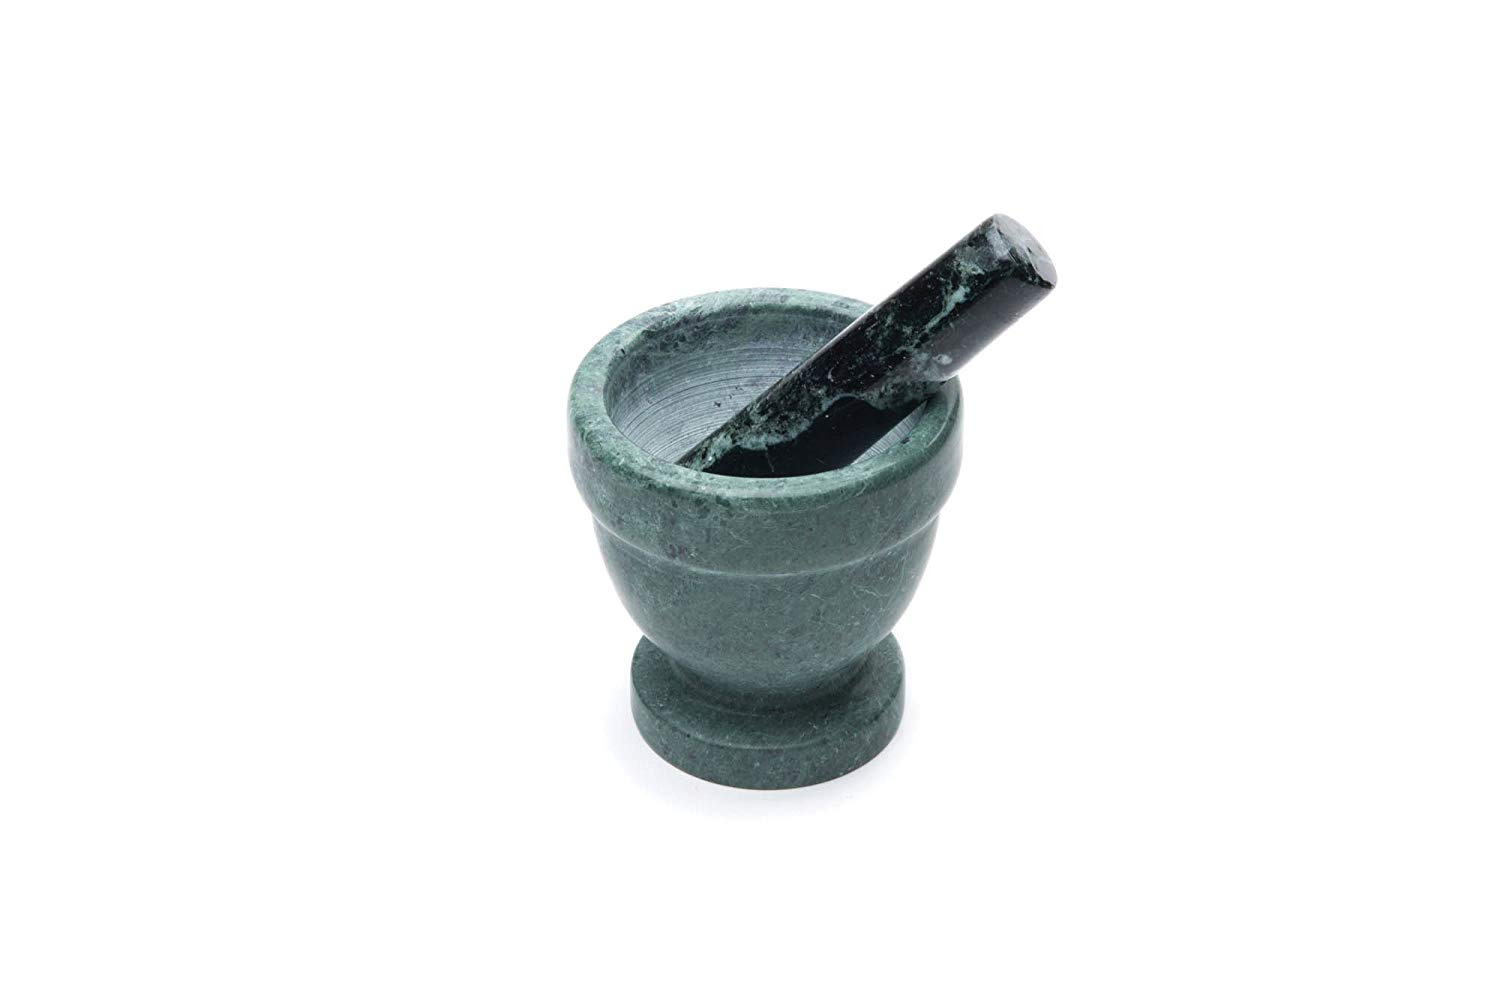 Fox run marble mortar and pestle